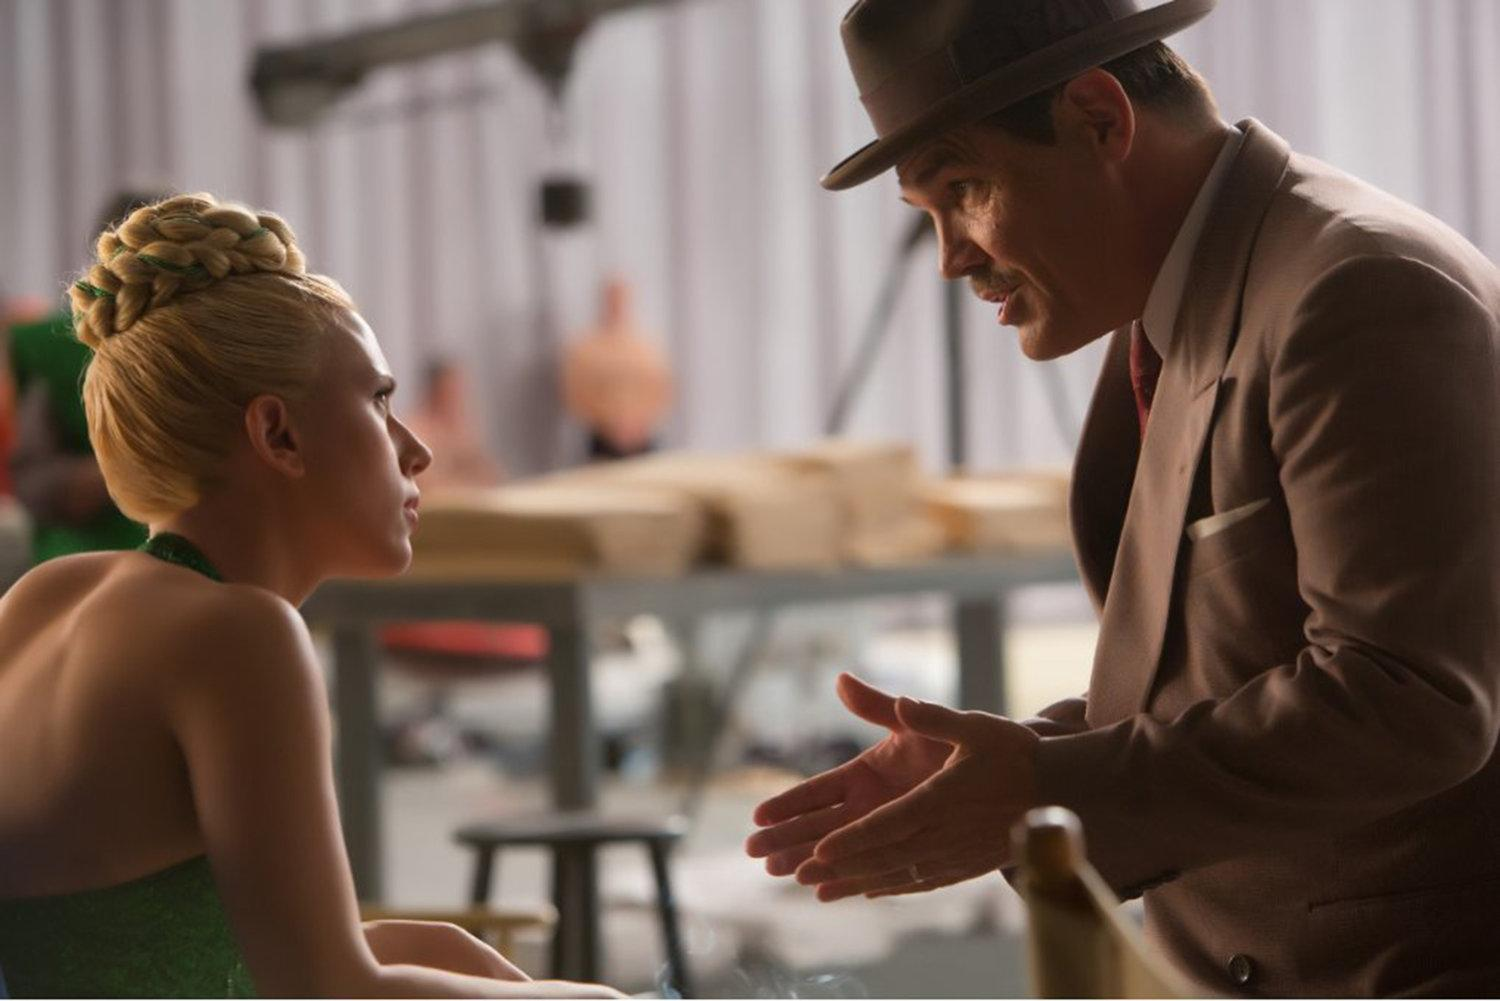 Scarlett Johansson and Josh Brolin in